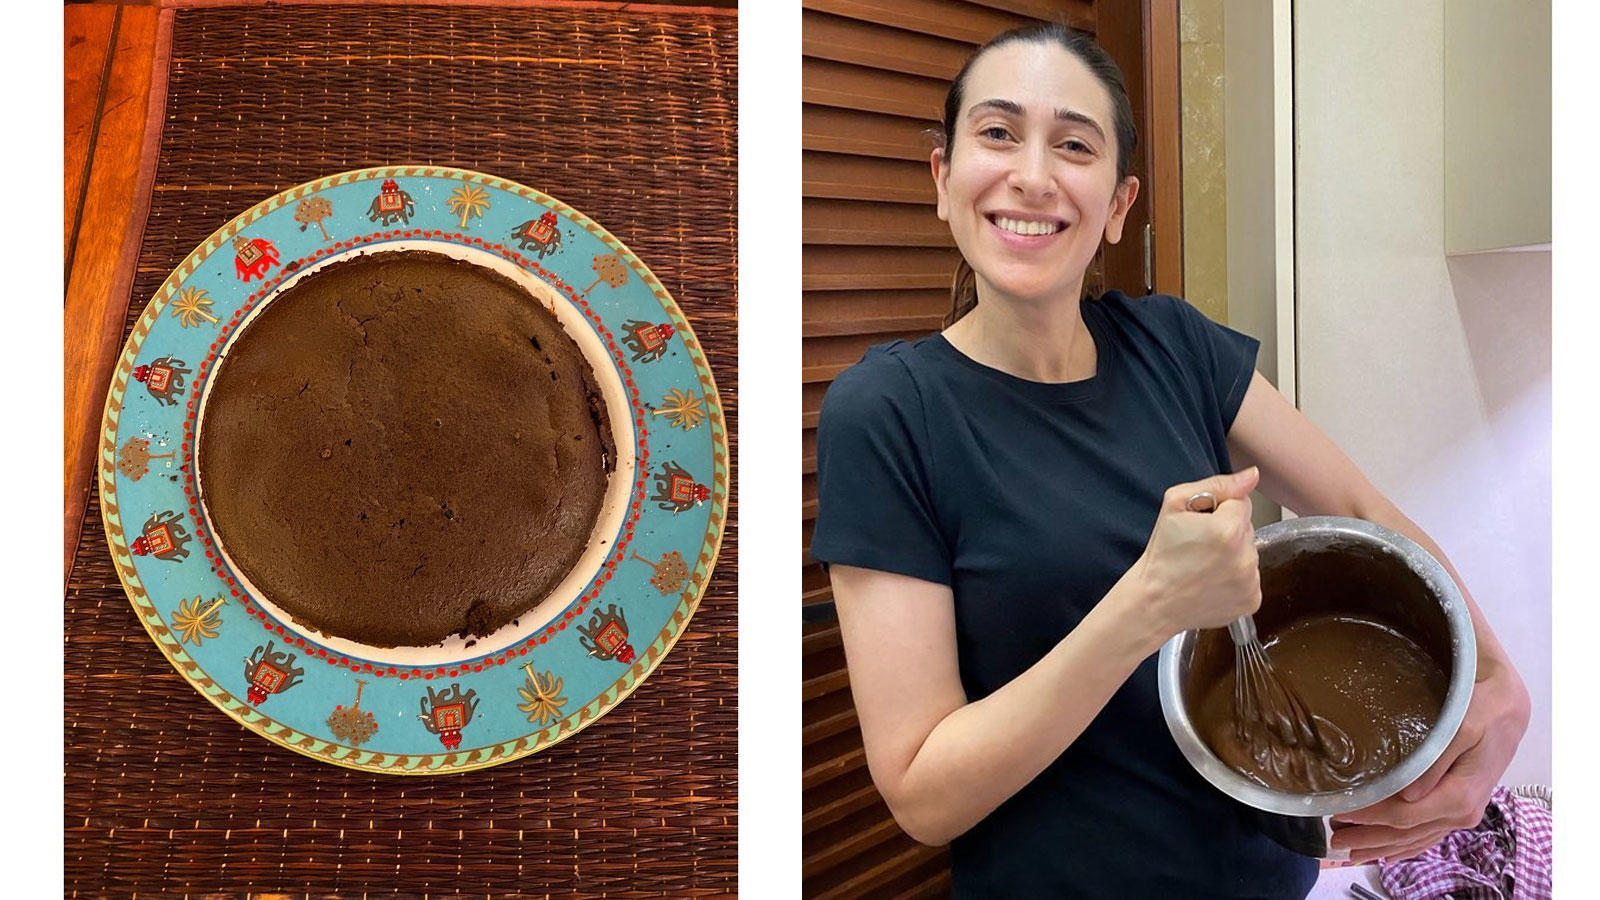 karisma-kapoor-bakes-a-delicious-chocolate-cake-for-her-family-and-staff-posts-pictures